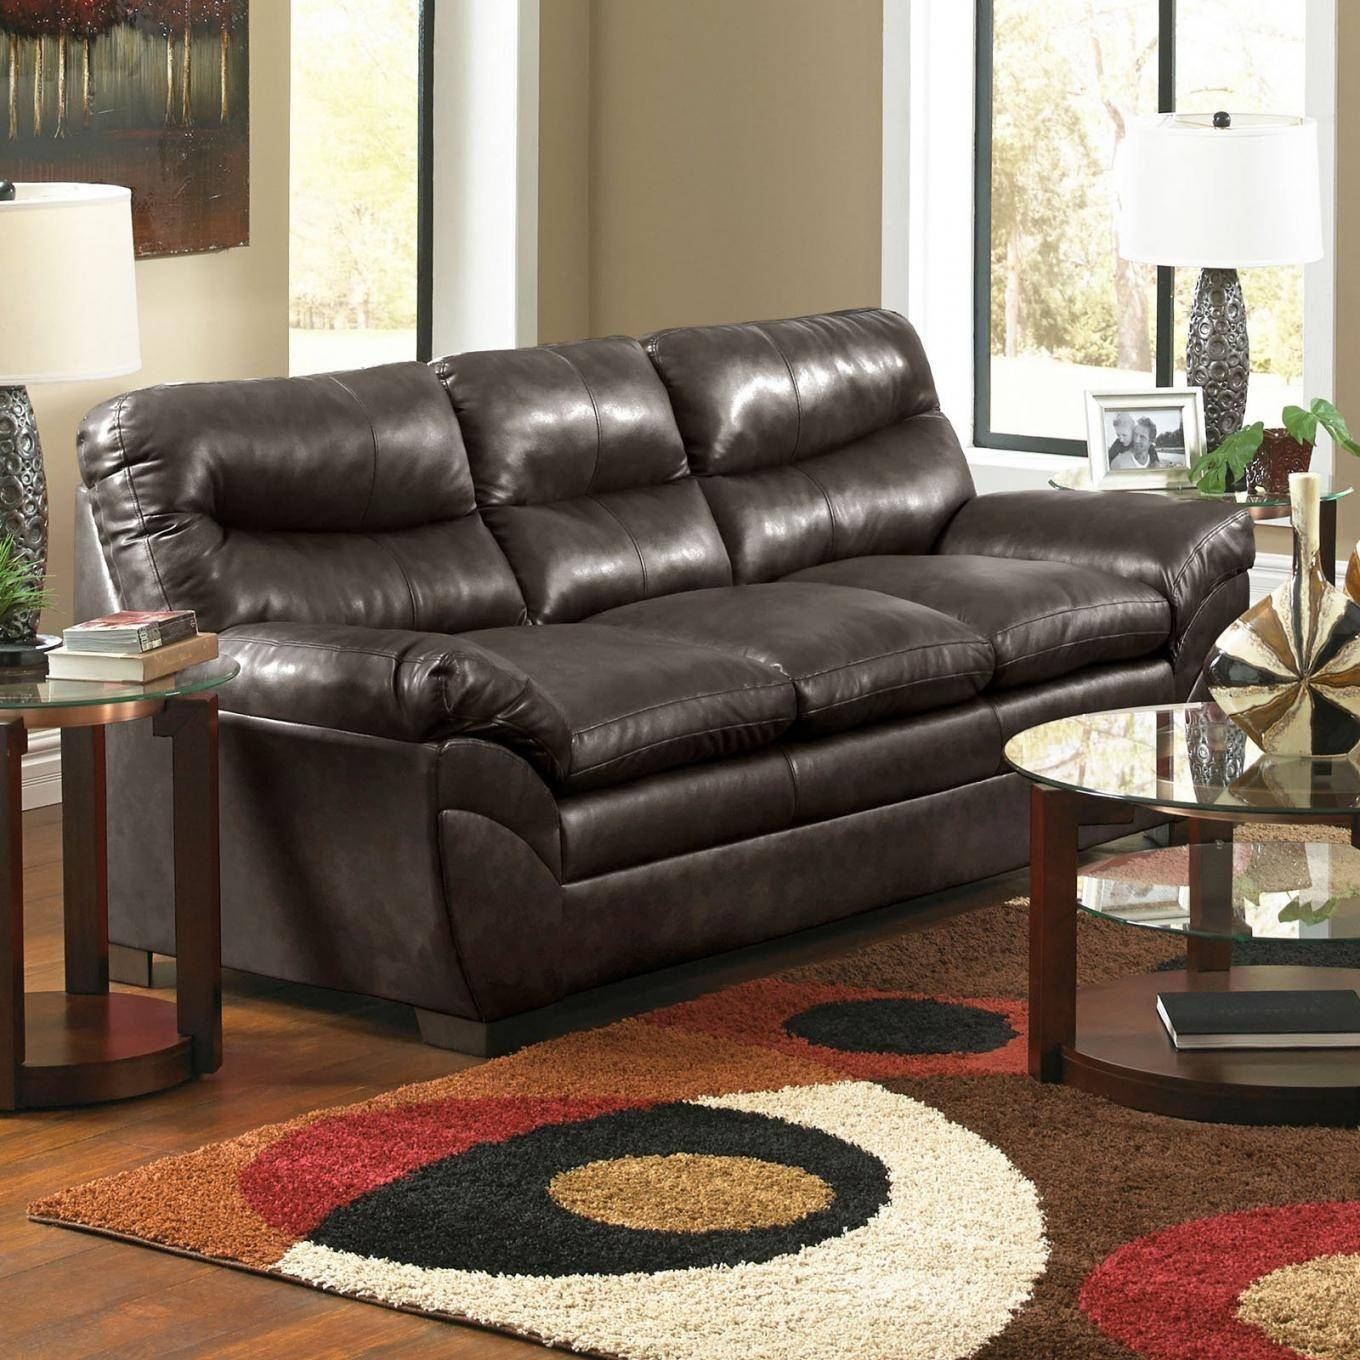 20 Ideas Of Simmons Bonded Leather Sofas | Sofa Ideas throughout Simmons Bonded Leather Sofas (Image 4 of 15)